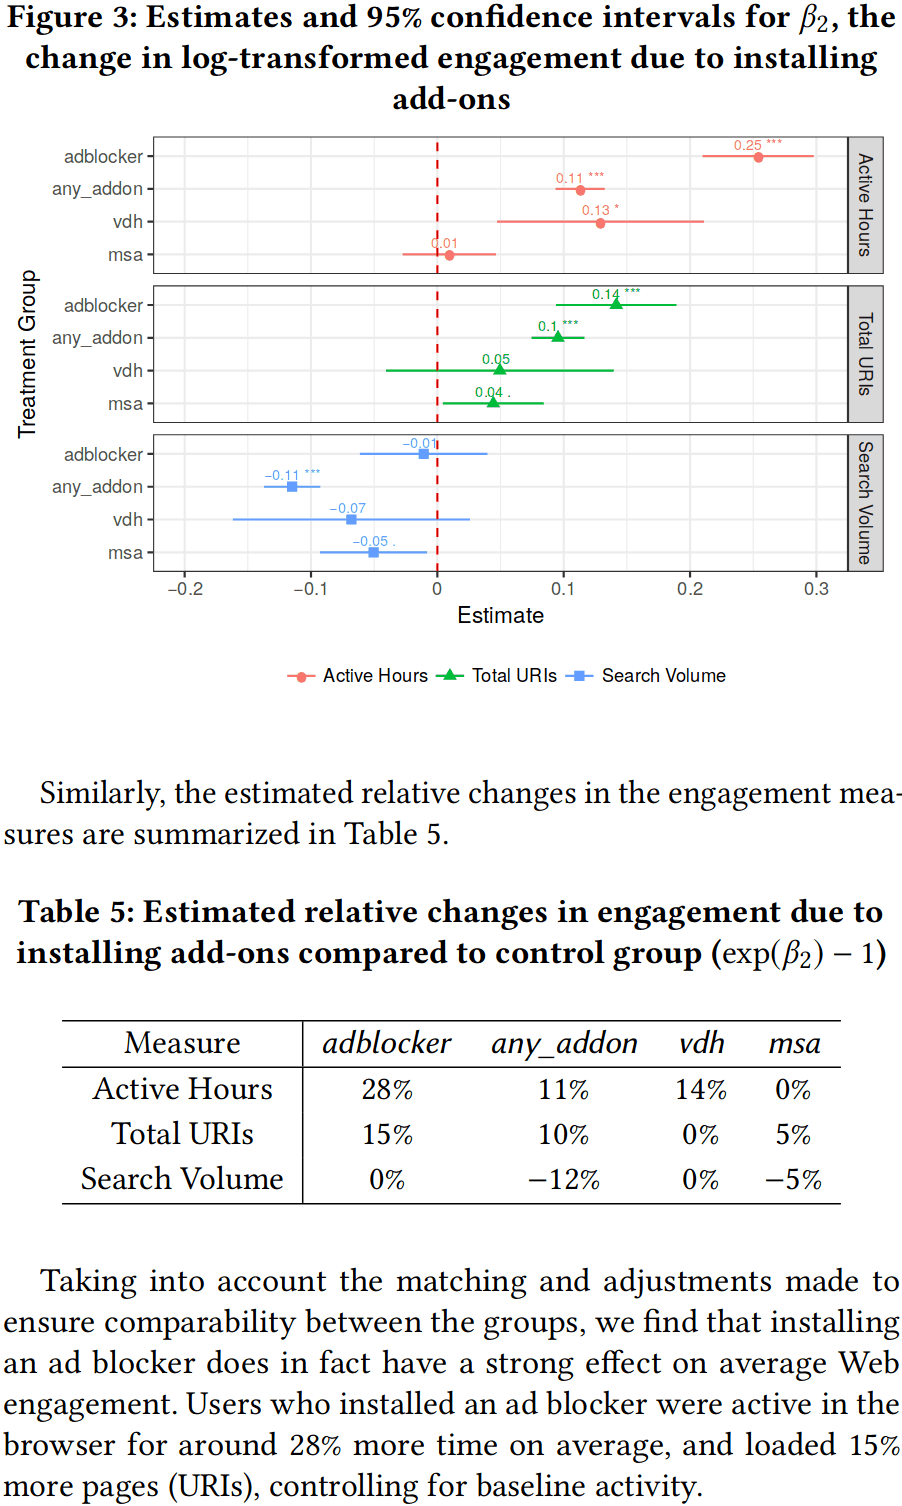 "Miroglio et al 2018, benefits to Firefox users from adblockers: ""Figure 3: Estimates & 95% CI for B2, the change in log-transformed engagement due to installing add-ons [adblockers]""; ""Table 5: Estimated relative changes in engagement due to installing add-ons compared to control group (exp(B2) − 1)"""